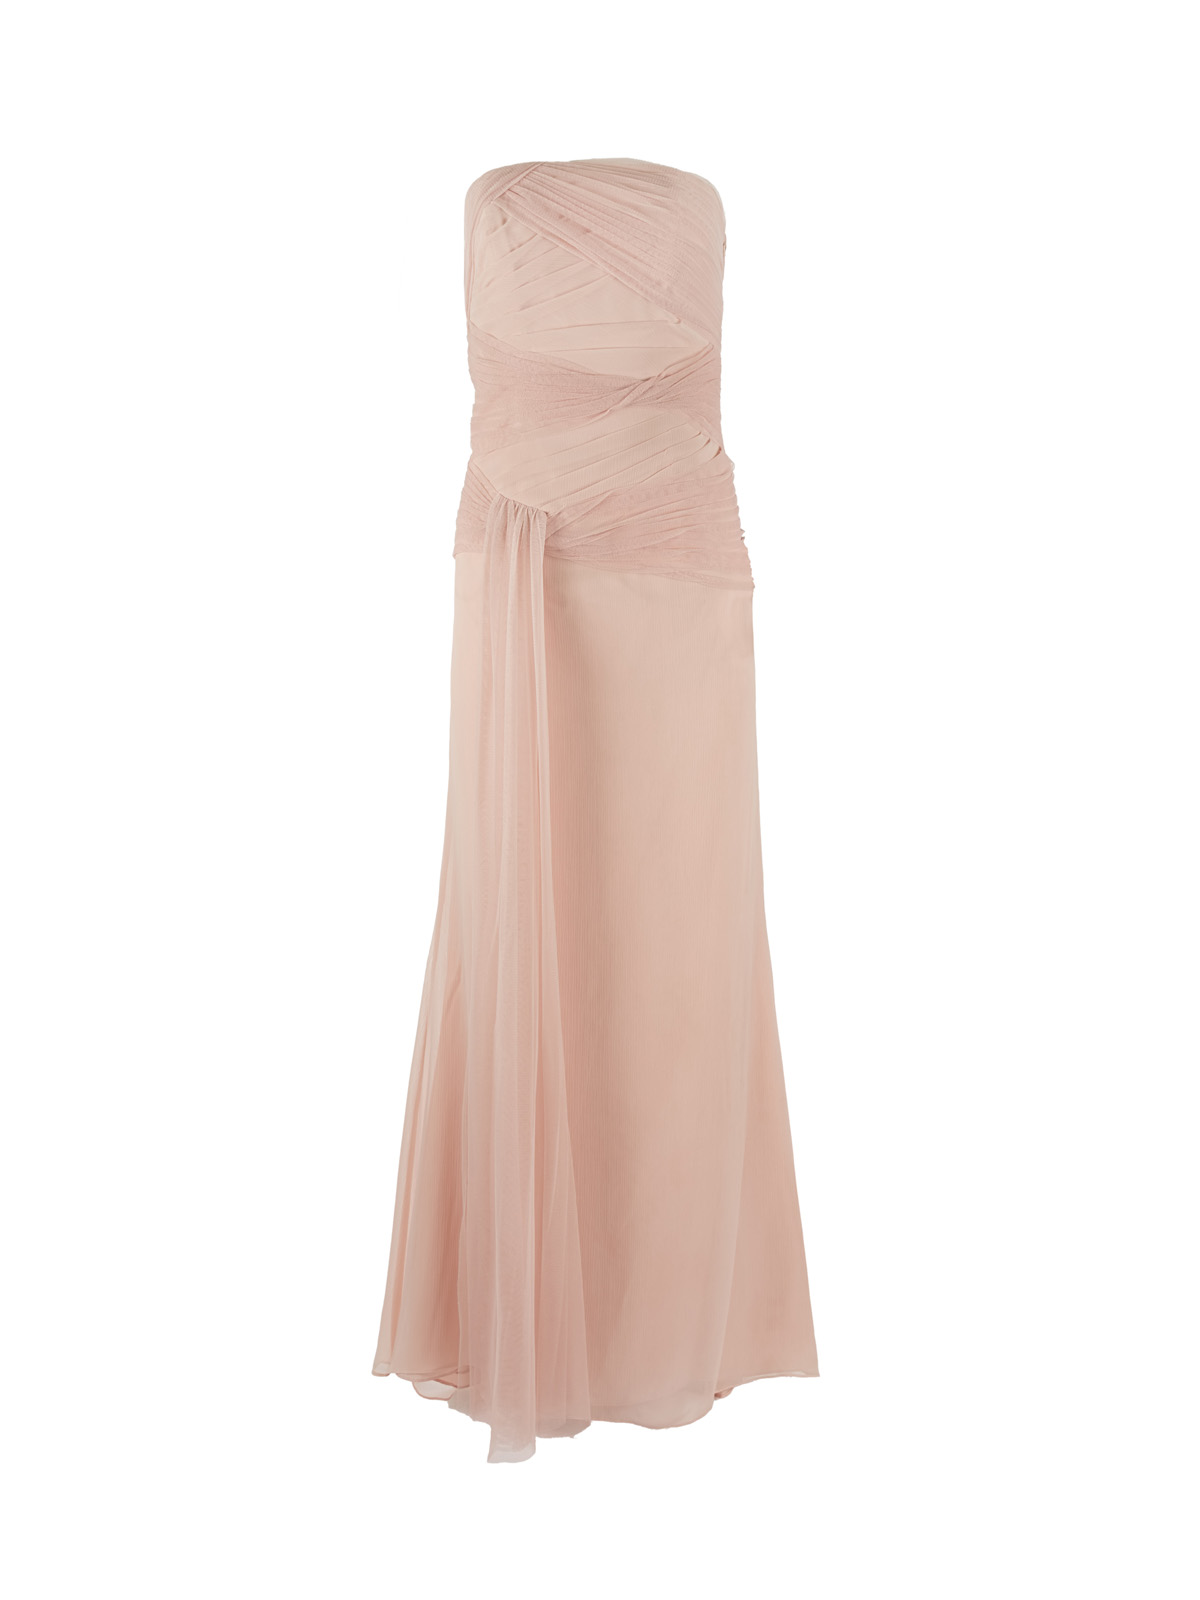 Dirty Pink Chiffon Dress